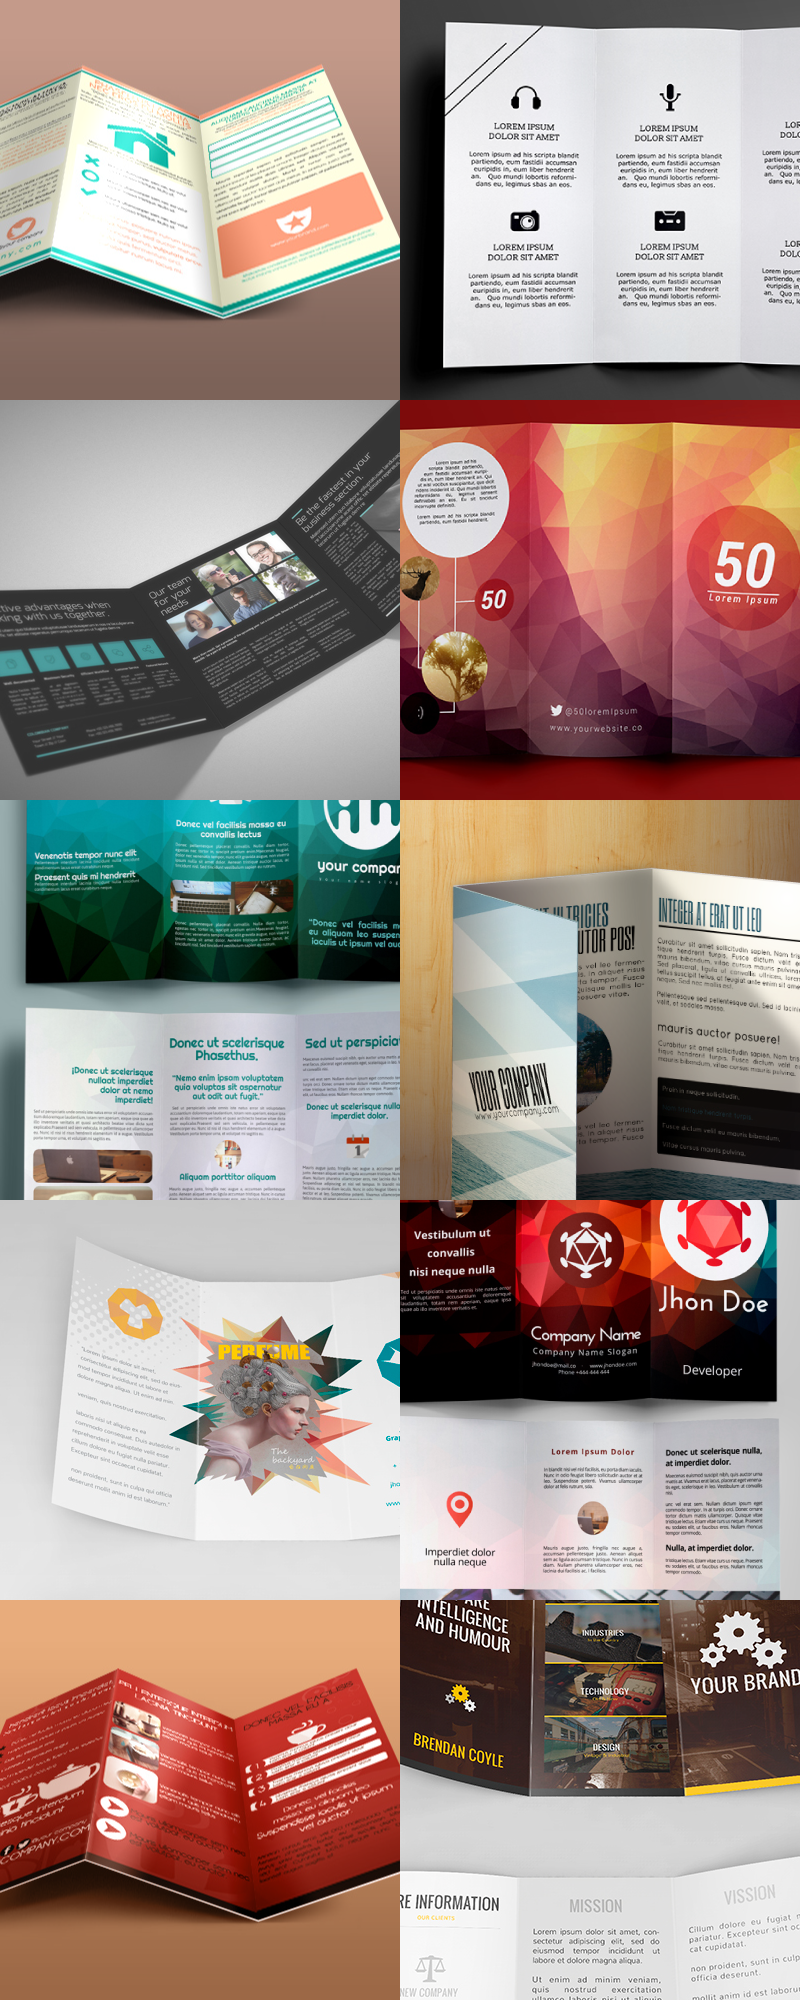 tri fold brochure template download 2 - 25 editable illustrator tri fold brochure templates bypeople